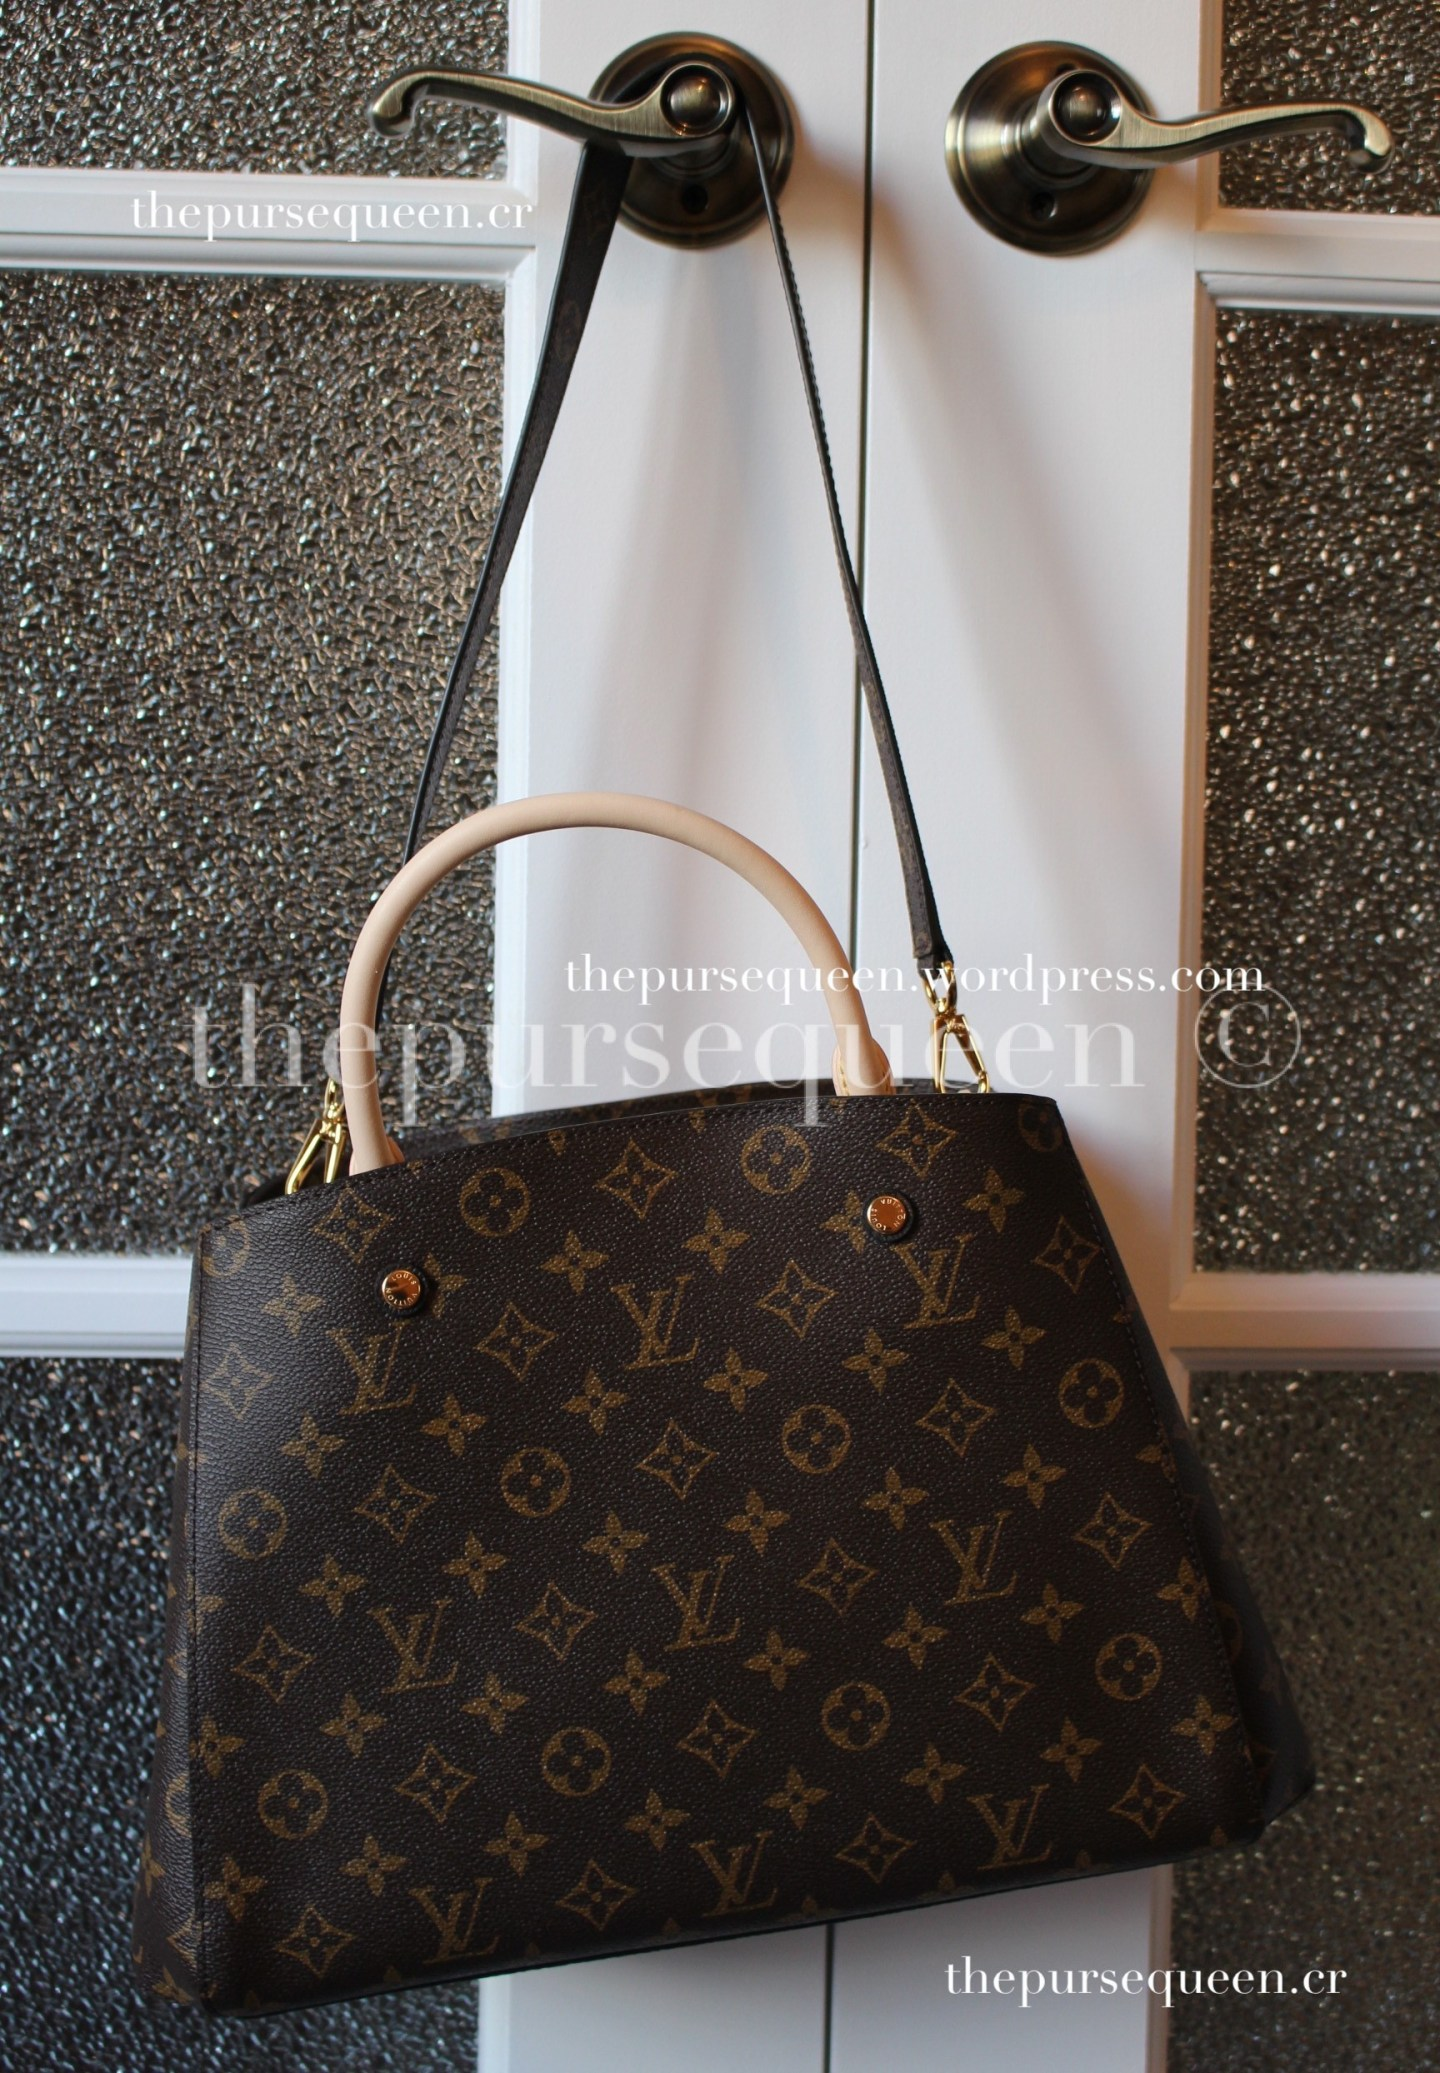 louis vuitton montaigne replica #replicabag #replicabags bag hanging counter quality